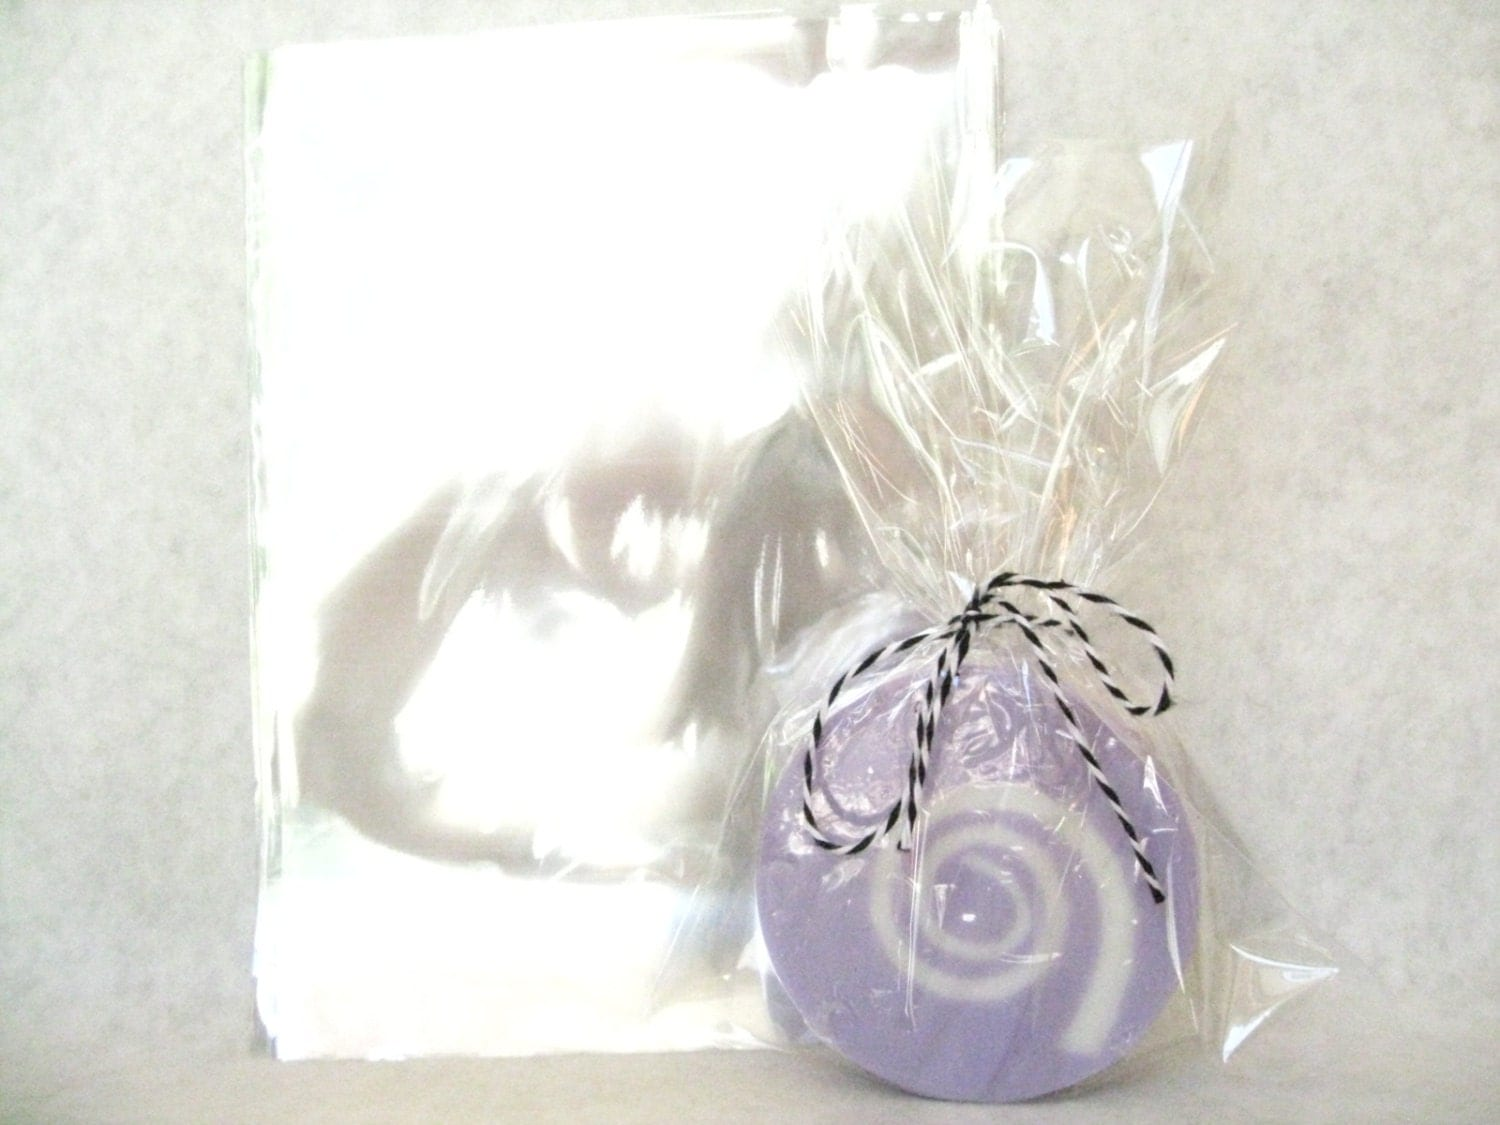 cello clear plastic bags 100 count party favor by thesudscafe. Black Bedroom Furniture Sets. Home Design Ideas